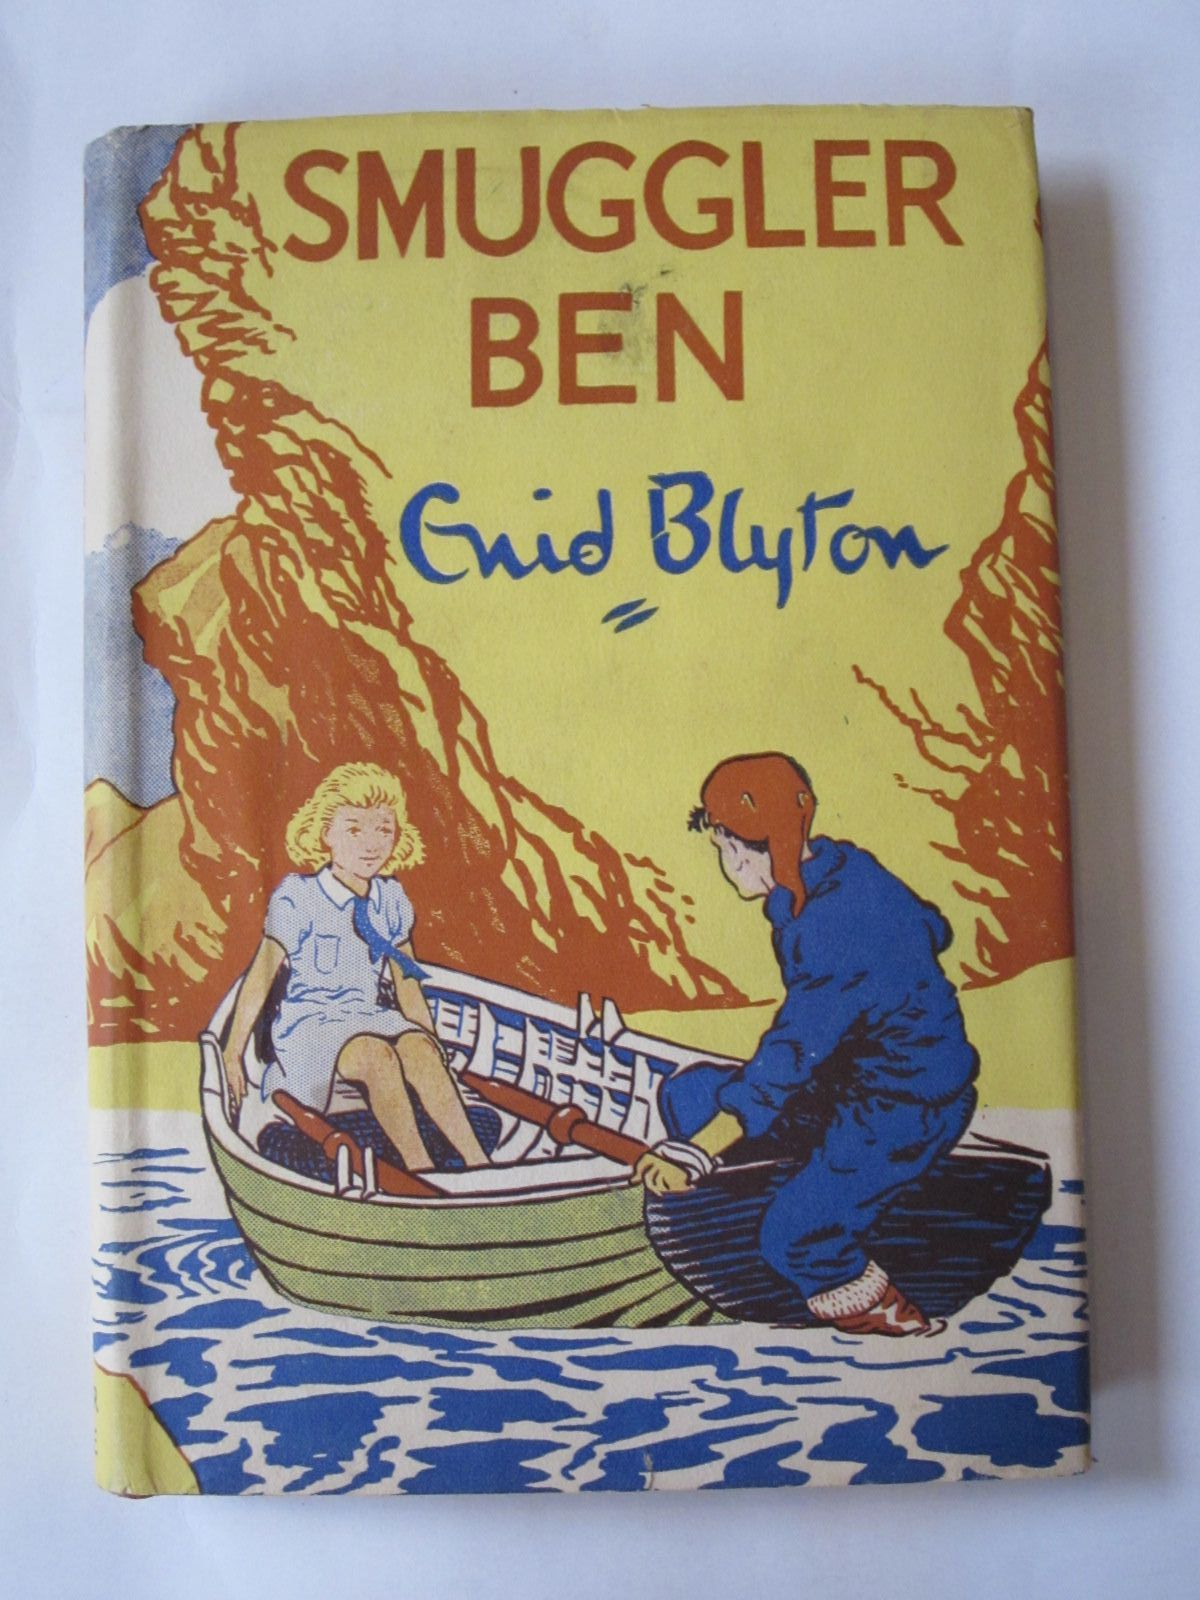 Photo of SMUGGLER BEN written by Blyton, Enid illustrated by Backhouse, G.W. published by Werner Laurie (STOCK CODE: 1308419)  for sale by Stella & Rose's Books